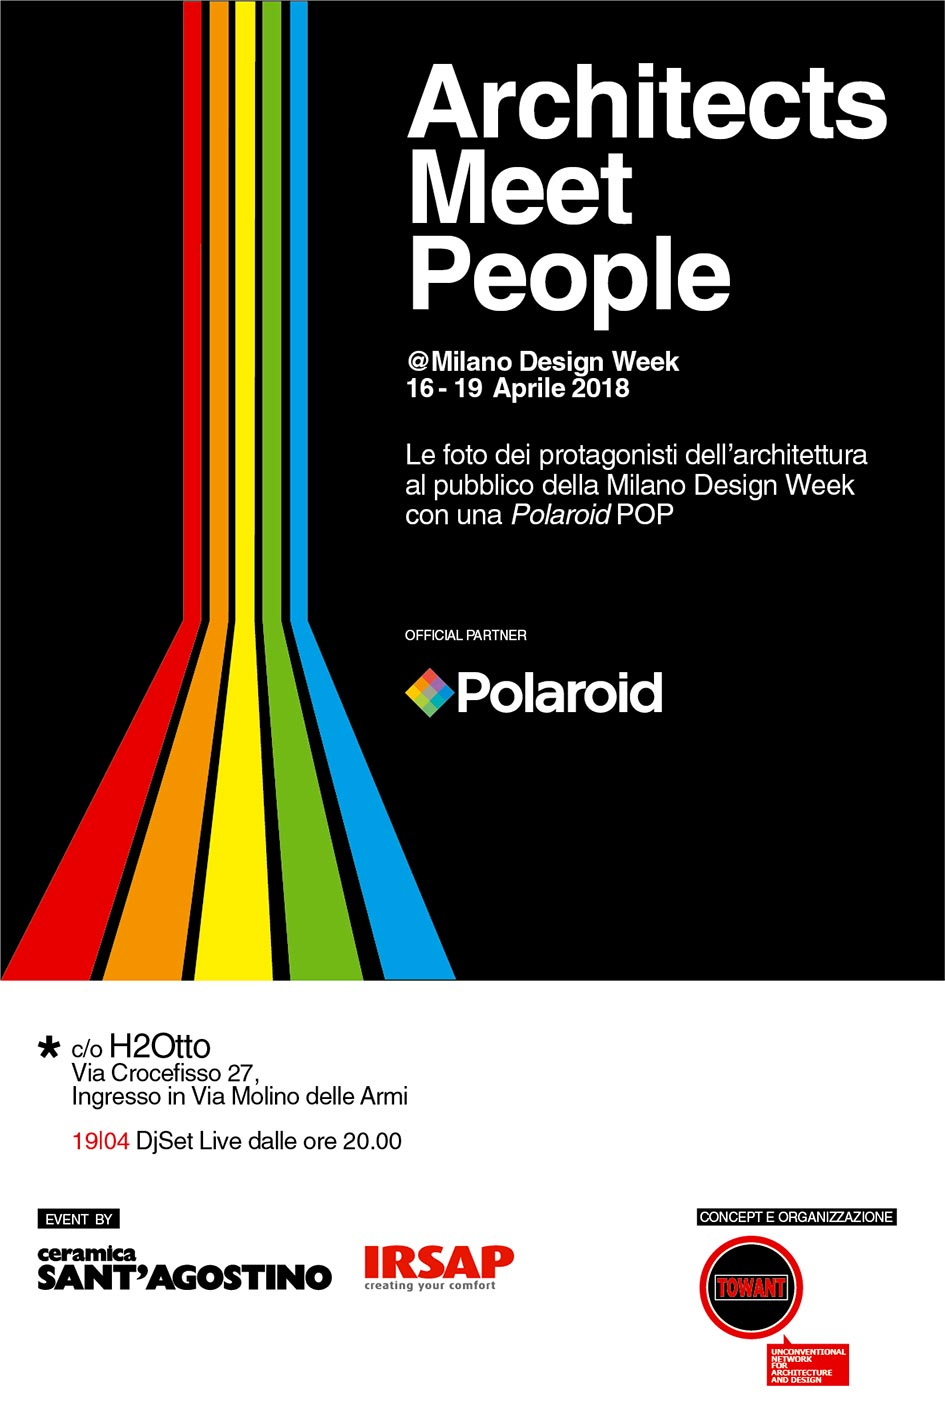 mdw2018-architects-meet-people